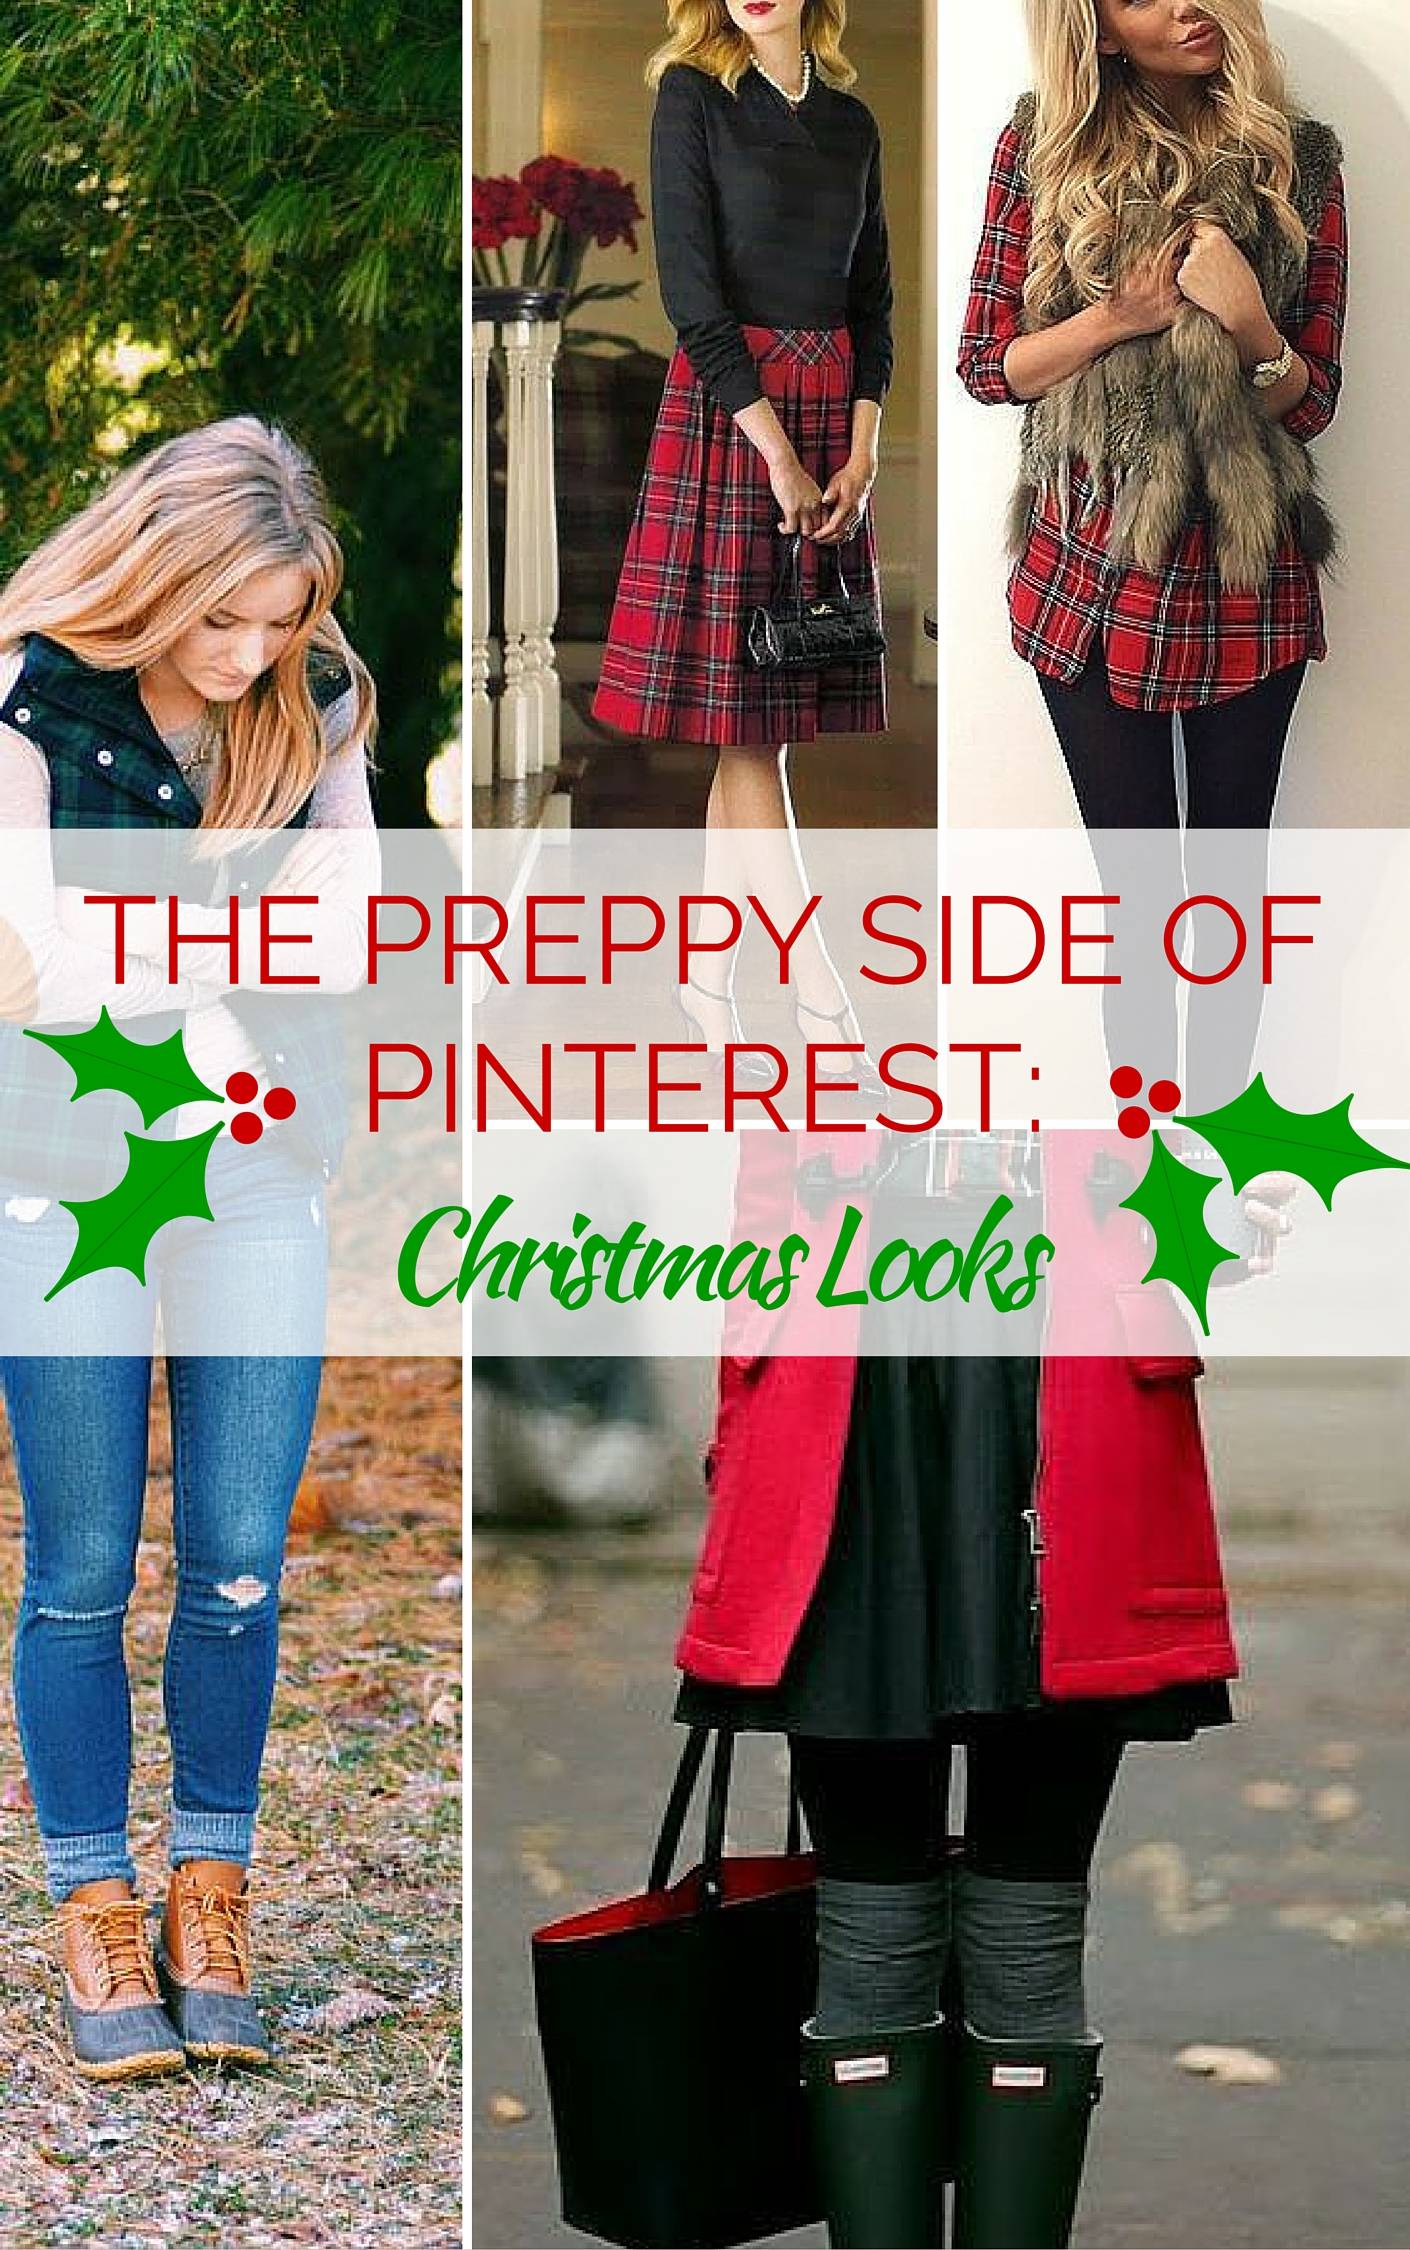 THE PREPPY SIDE OF PINTEREST-